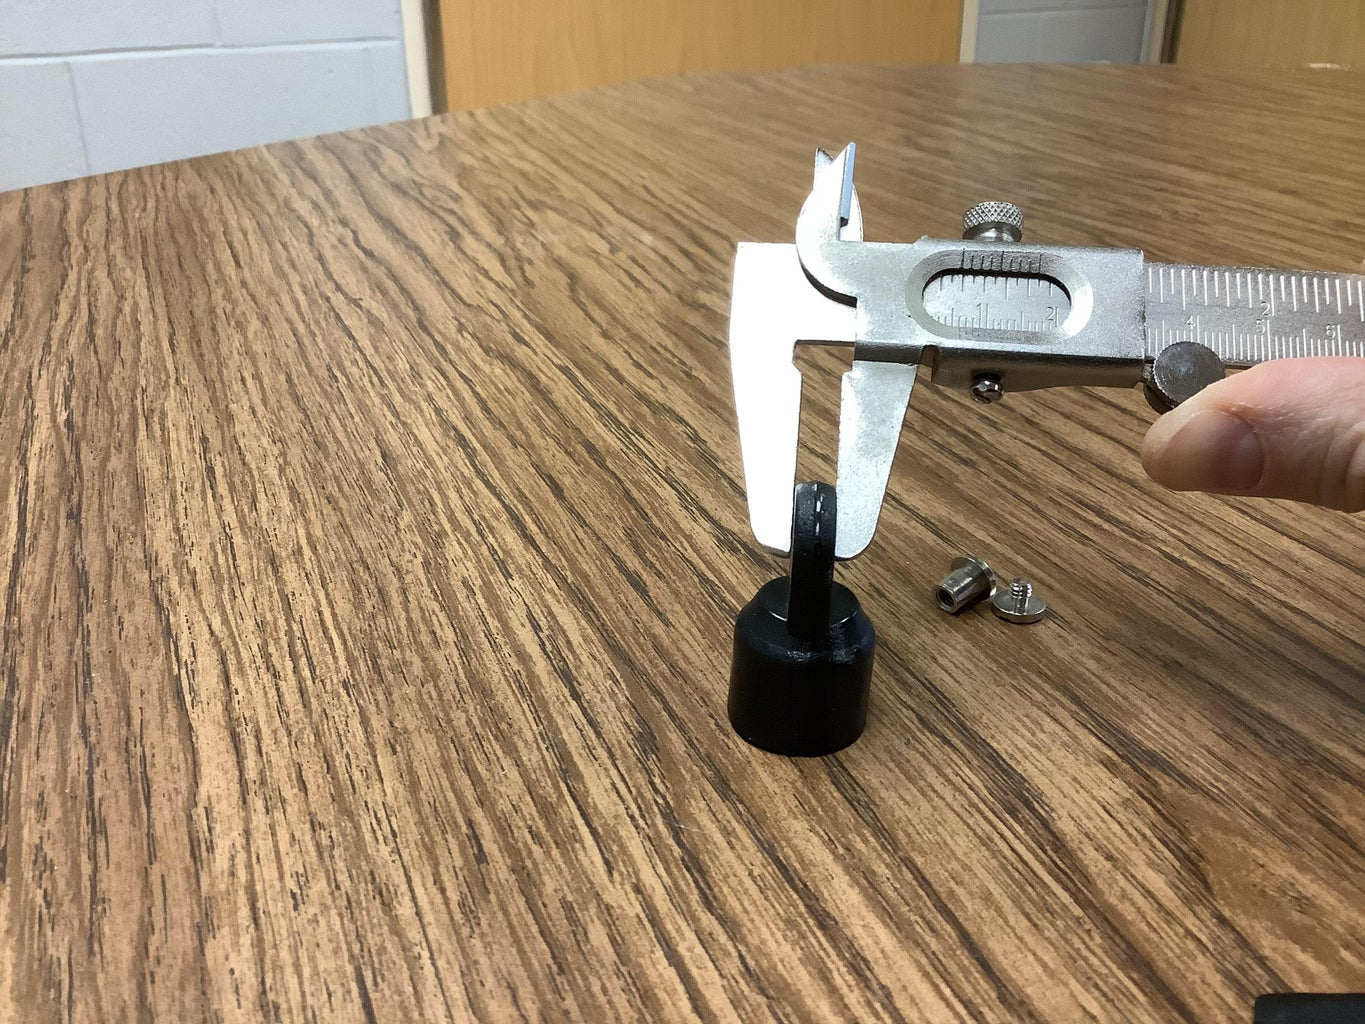 Measure Your Cellphone and Microphone Clip.